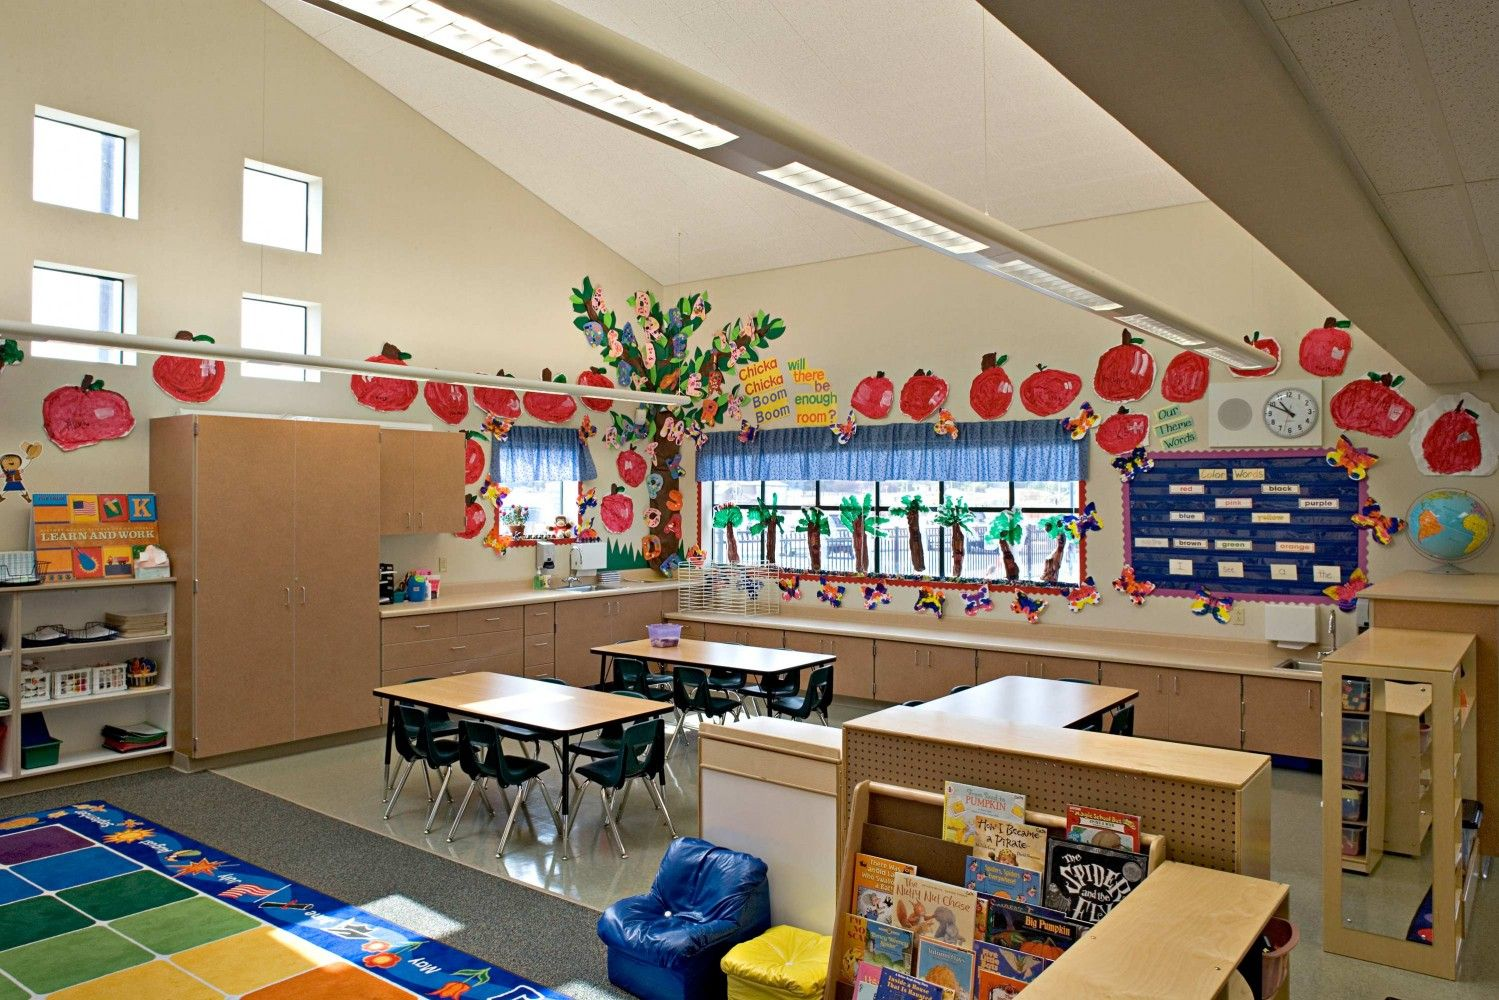 17 best images about classroom design on pinterest virginia middle school classroom and montessori - Classroom Design Ideas